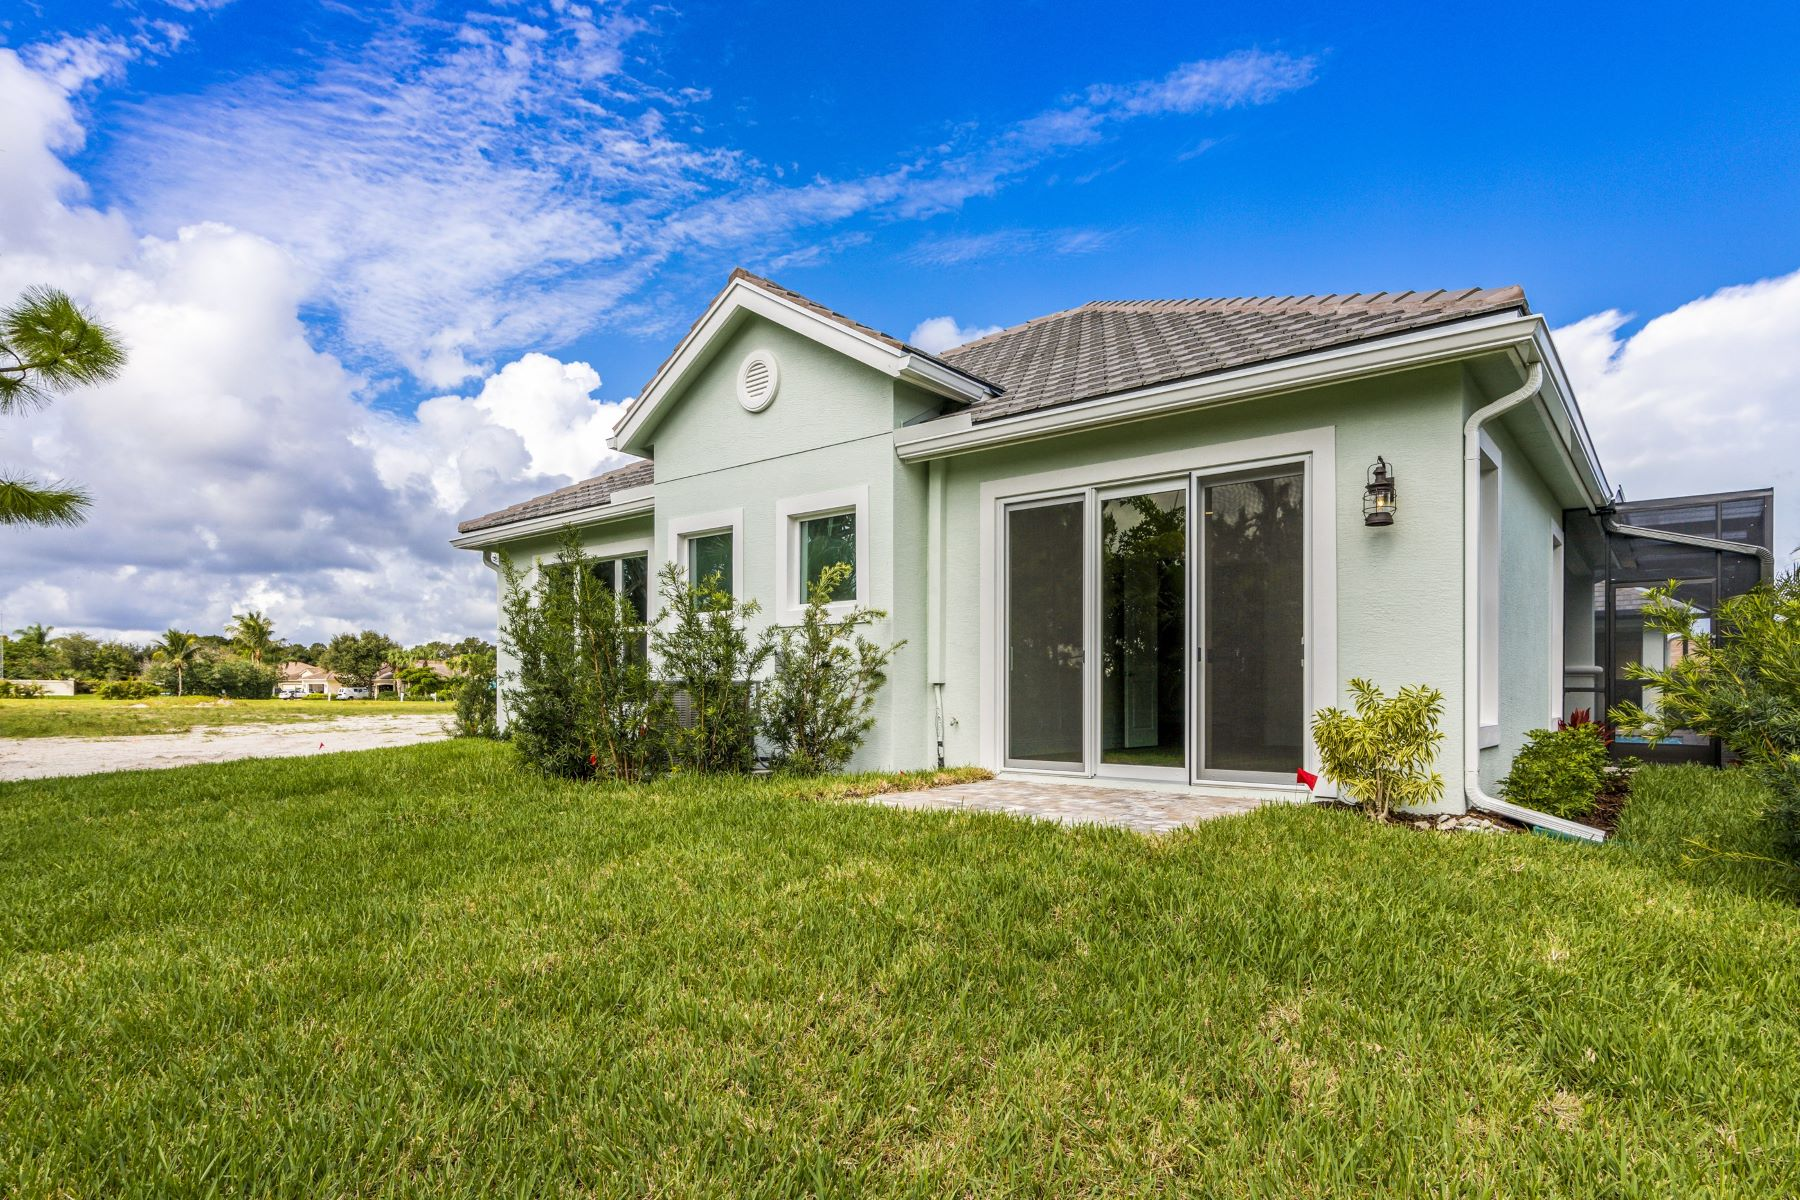 Additional photo for property listing at 2143 Falls Circle Vero Beach, Florida 32967 United States